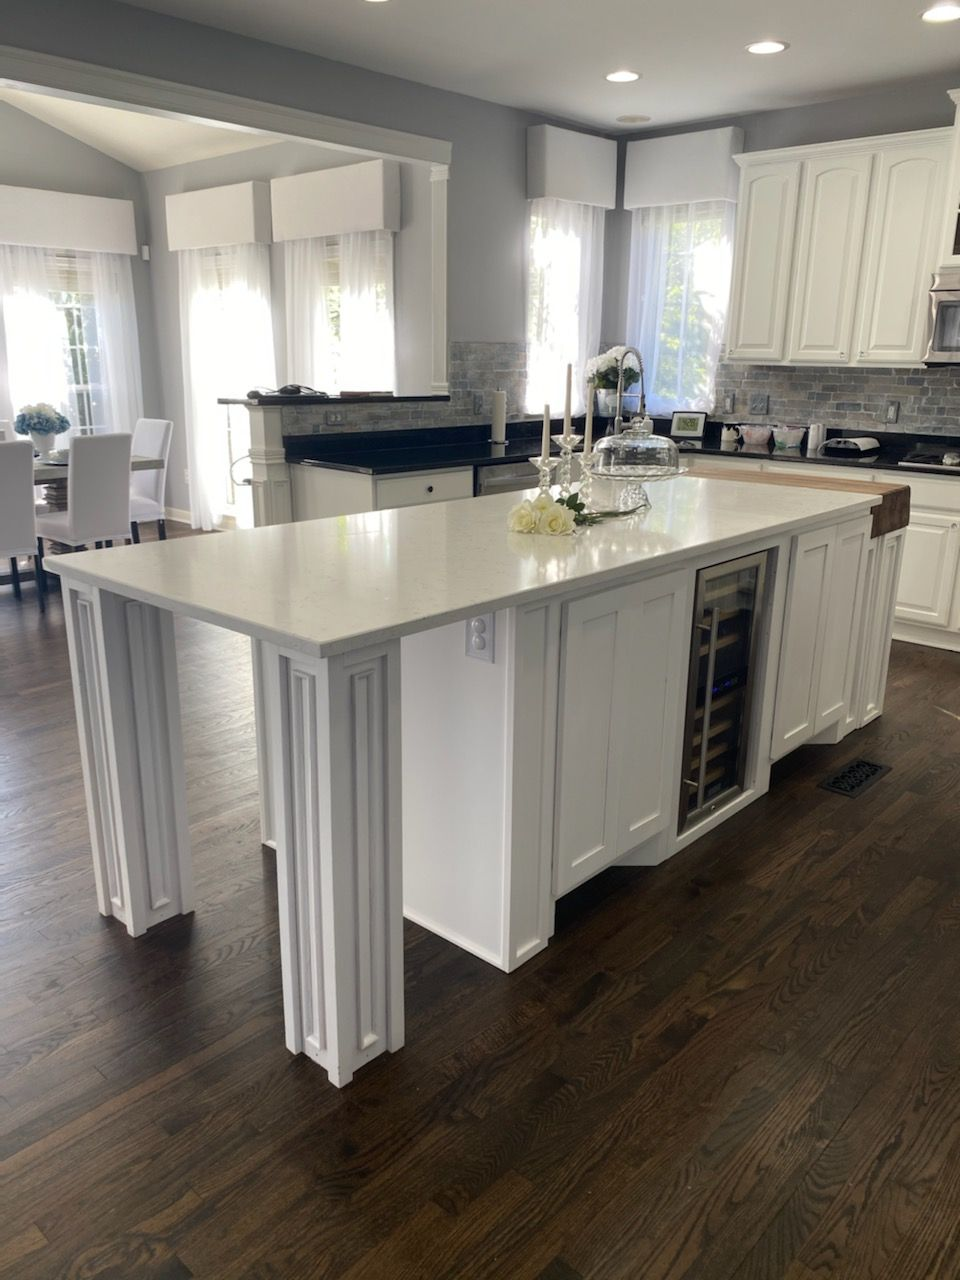 Kitchen island cabinetry